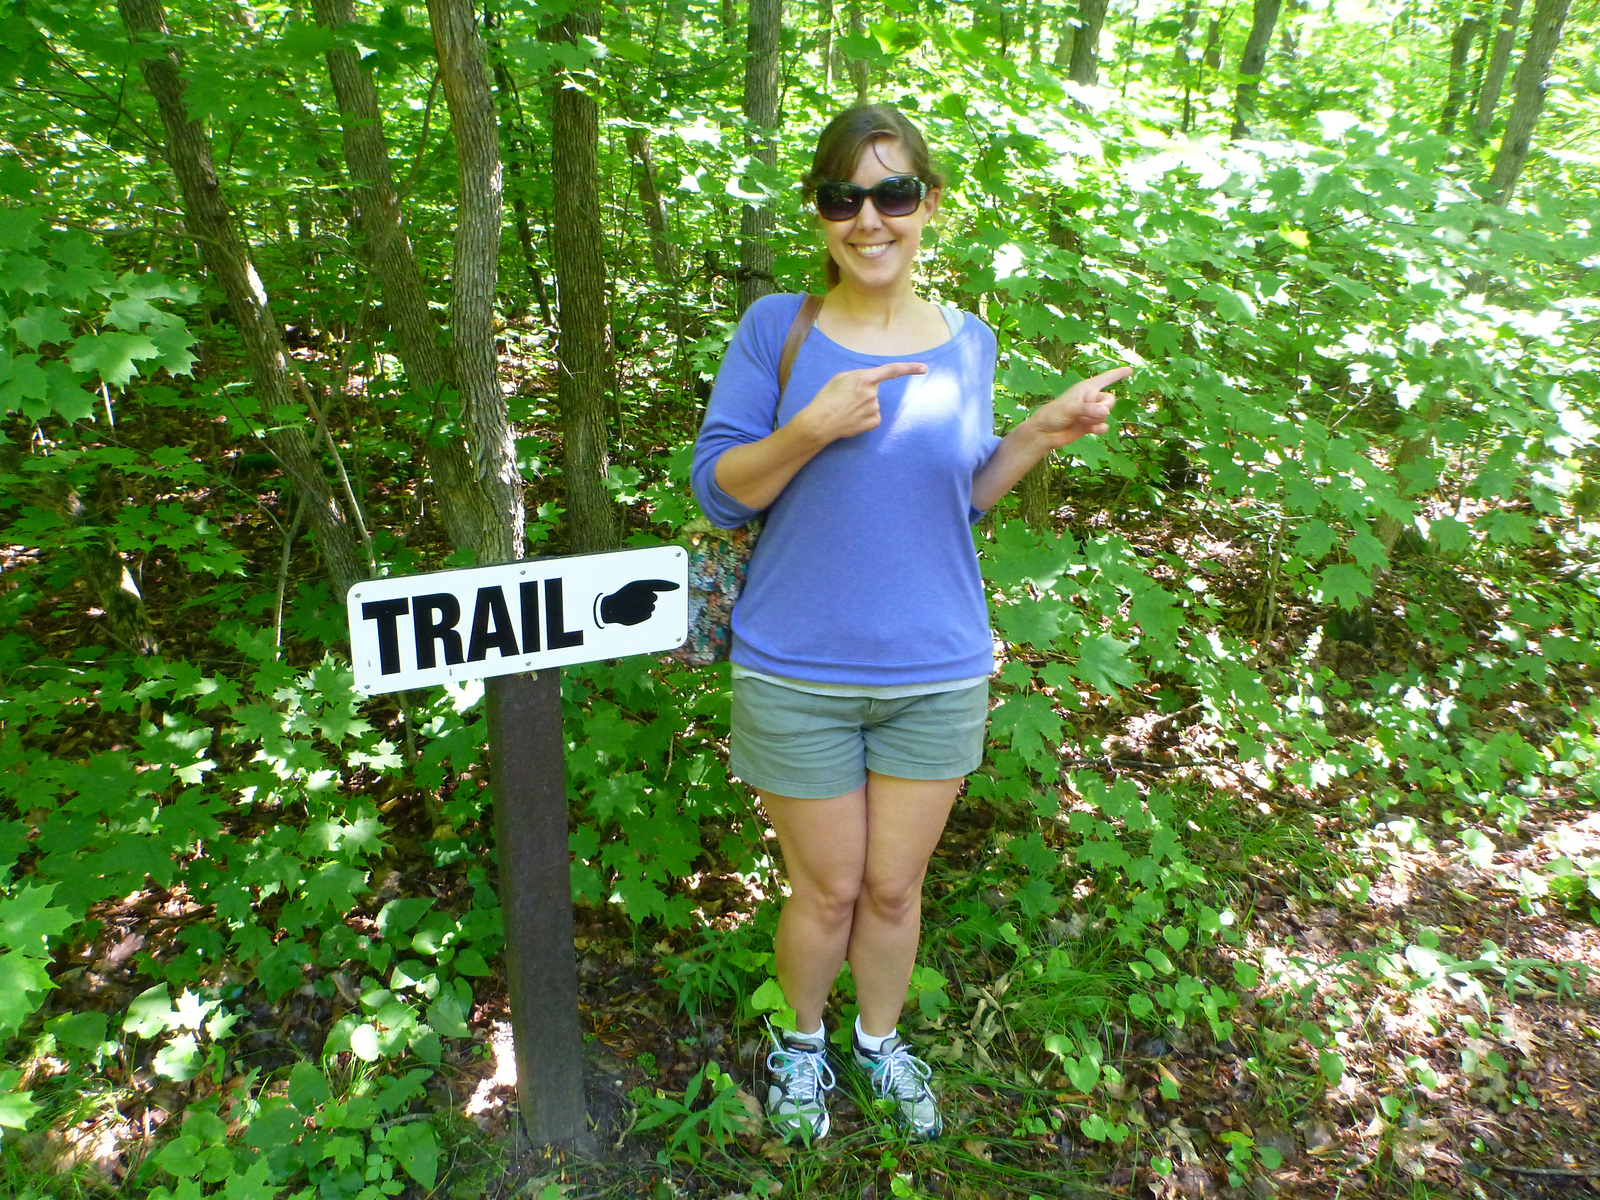 Hell Holes Cave and Nature Trails in Napanee, Ontario